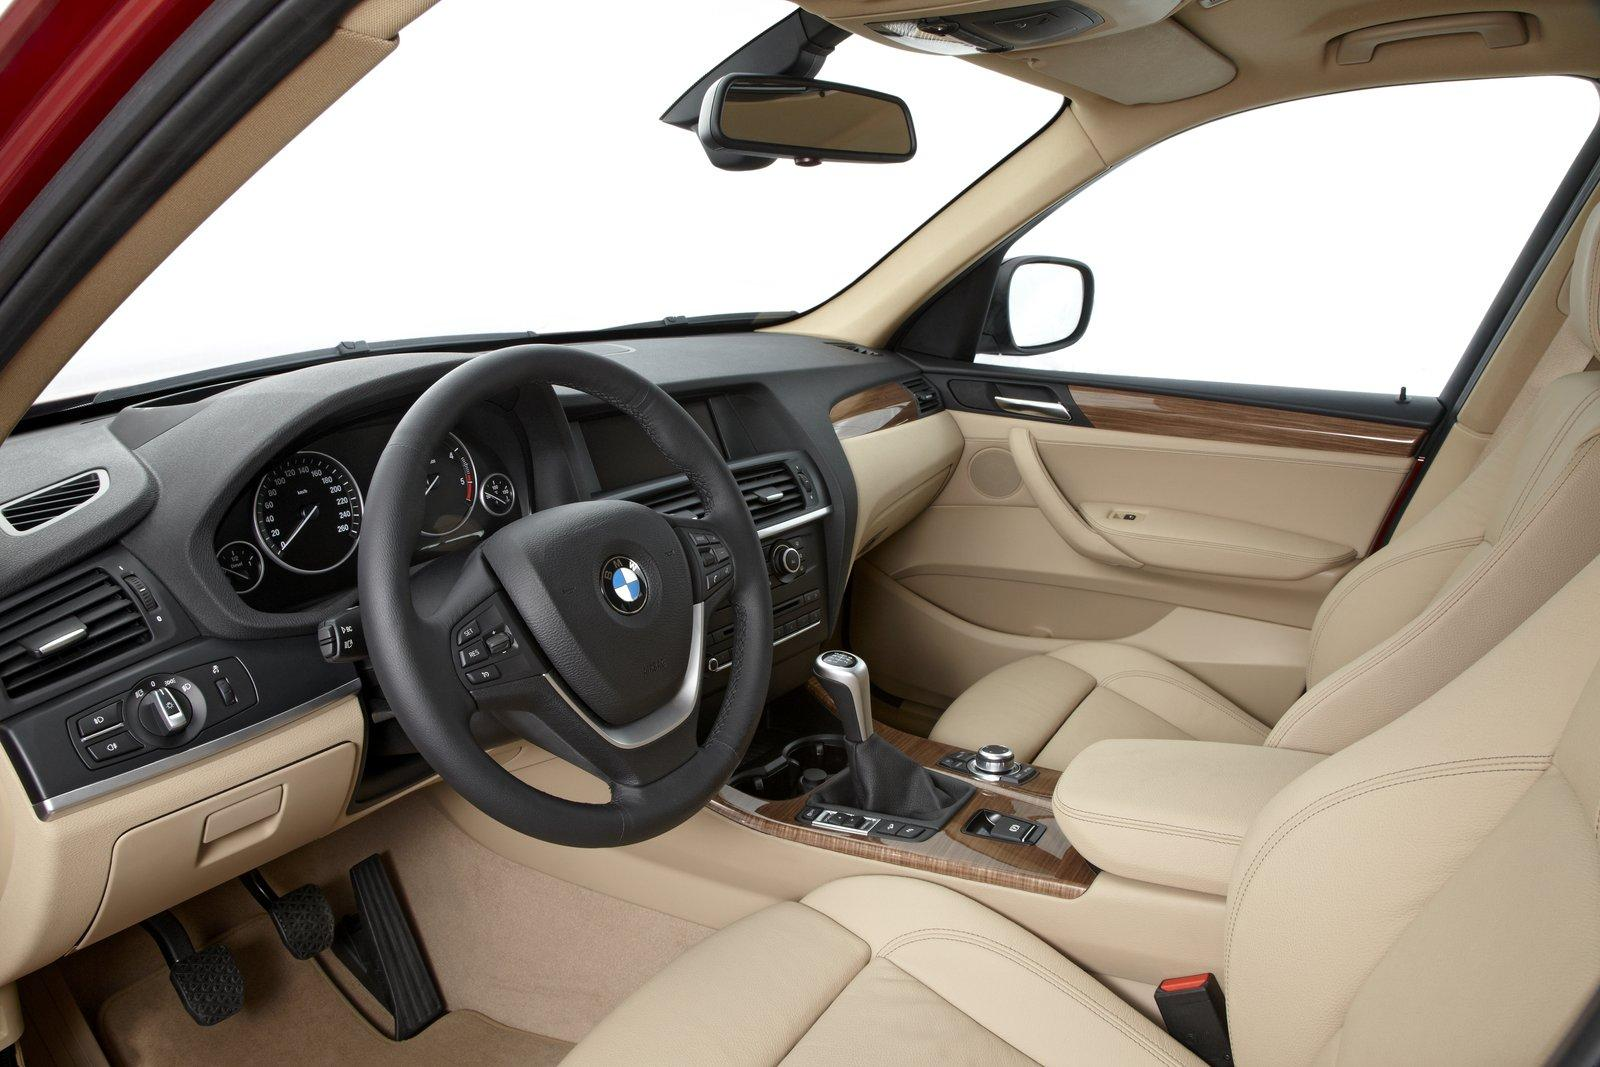 bmw x3 interior. Black Bedroom Furniture Sets. Home Design Ideas